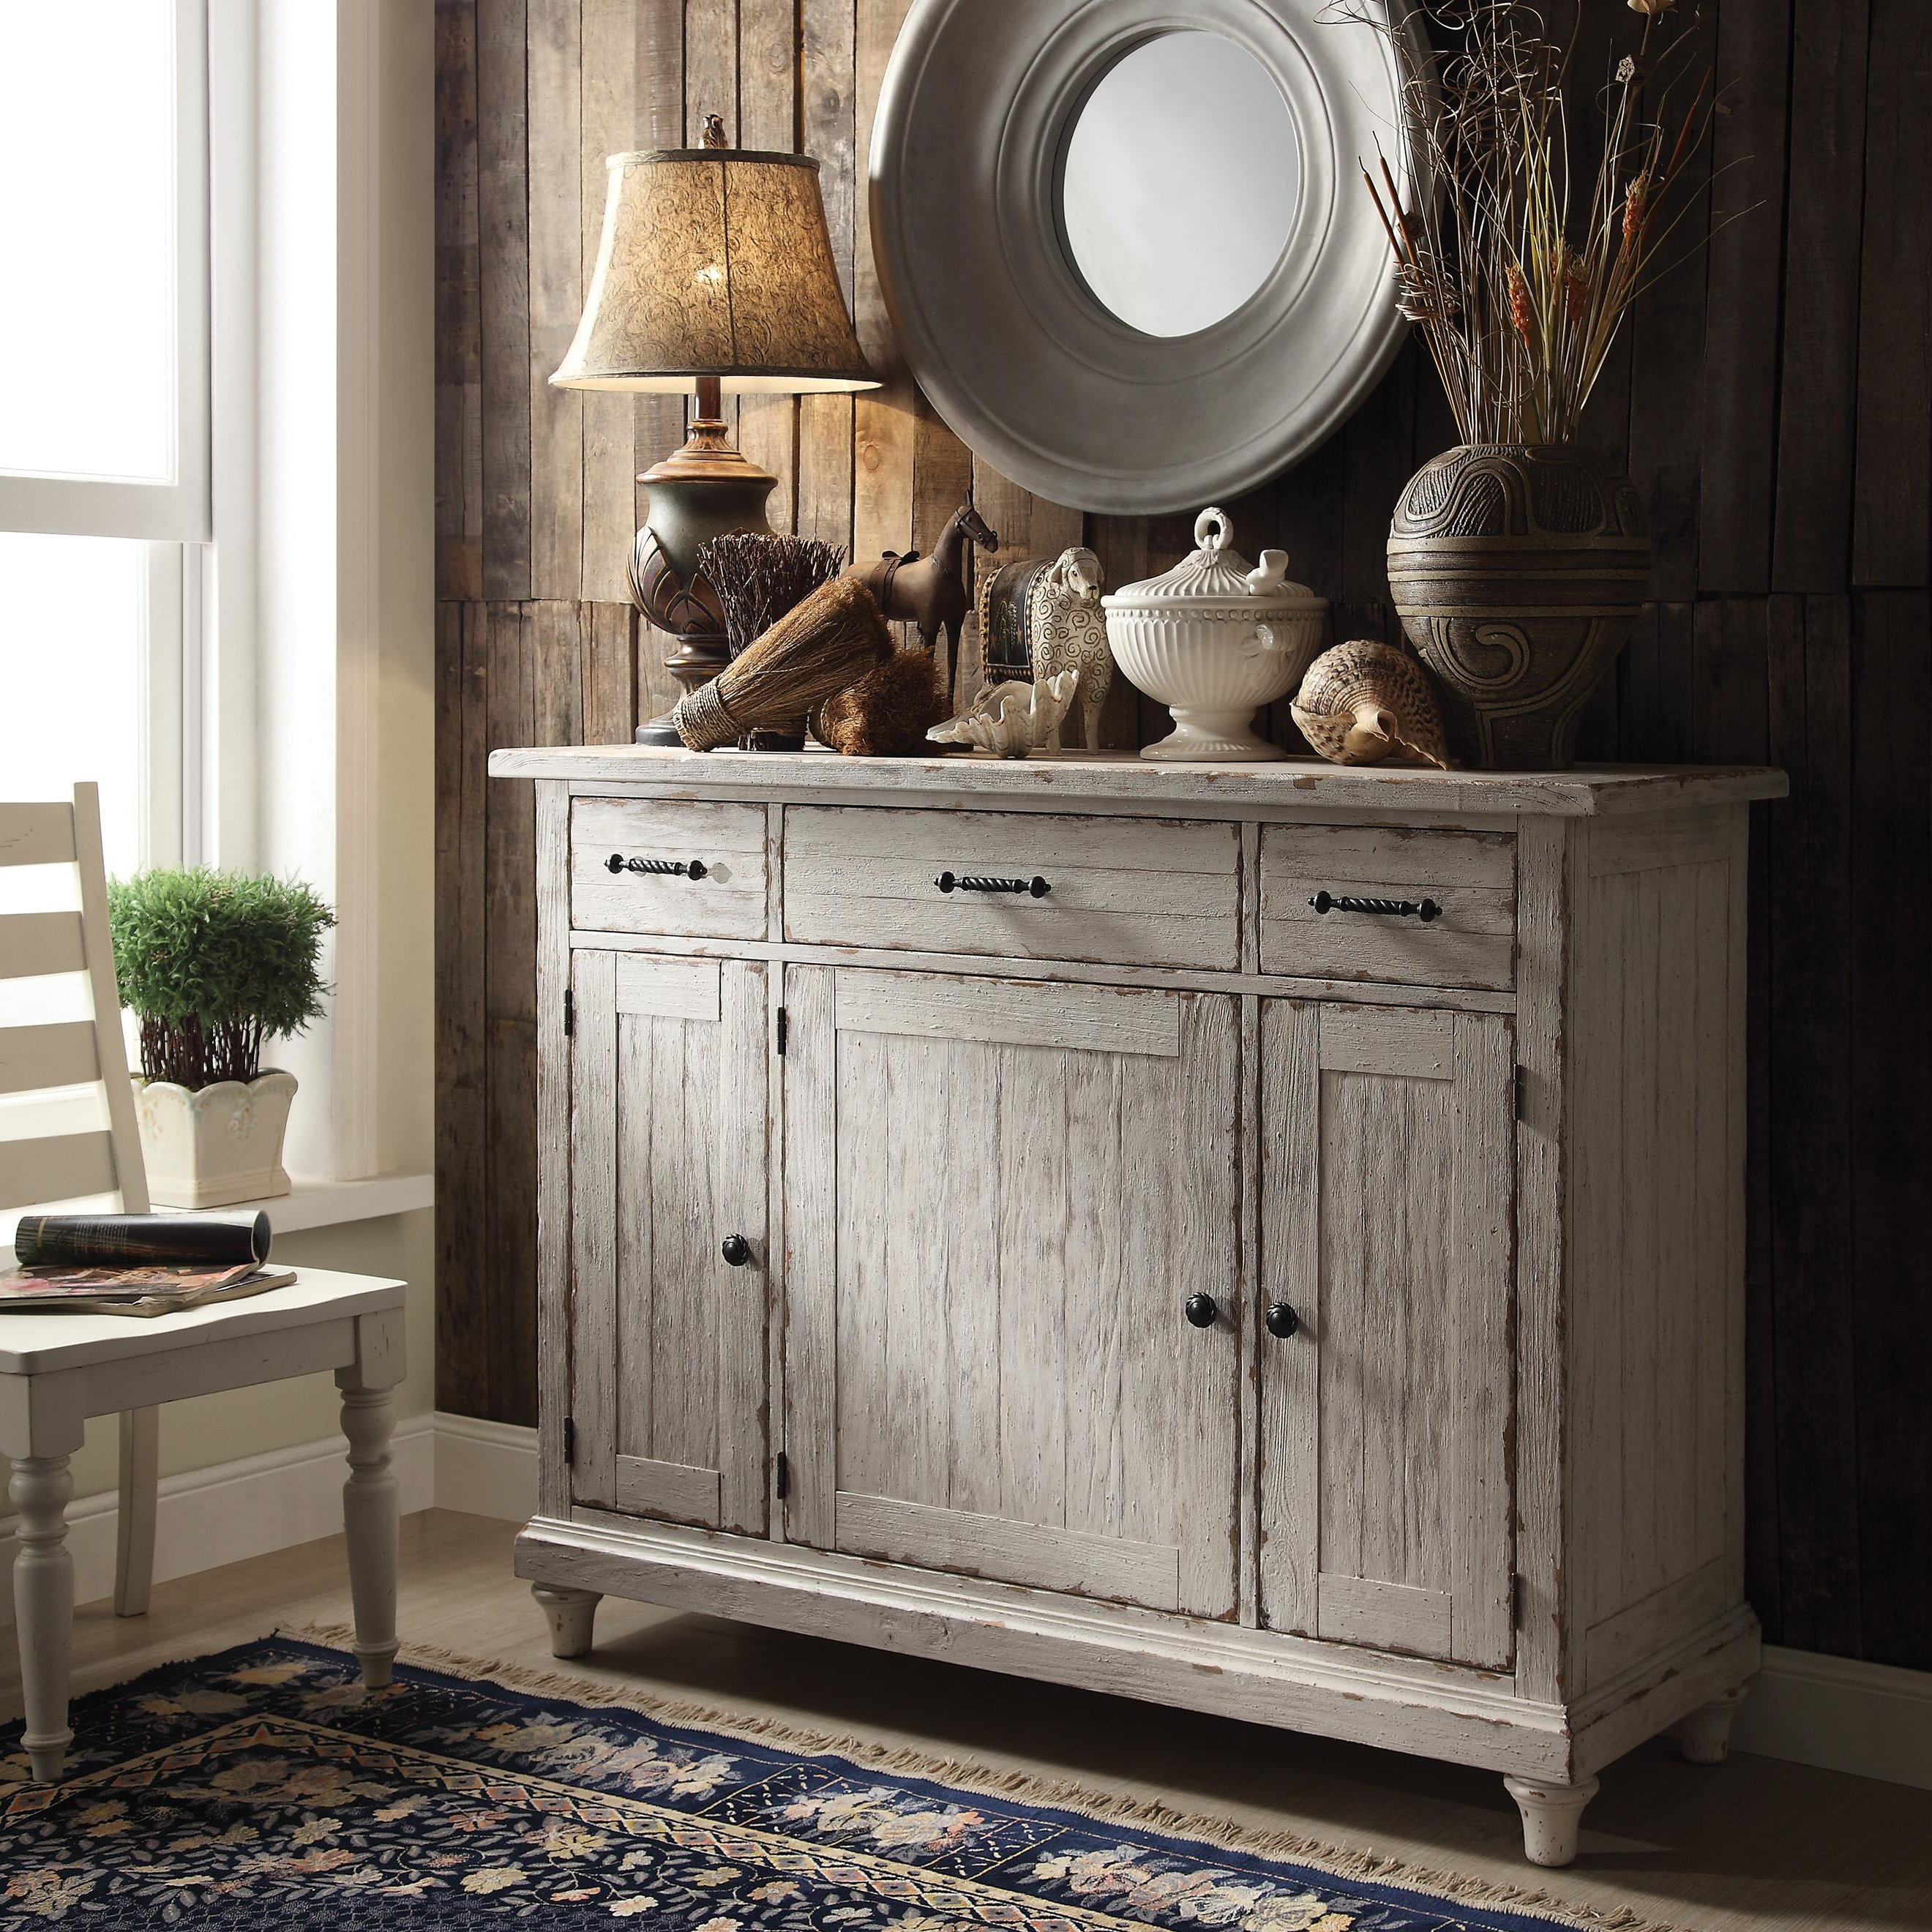 Payton Serving Sideboards Regarding Newest Farmhouse & Rustic Sideboards & Buffets (Gallery 18 of 20)